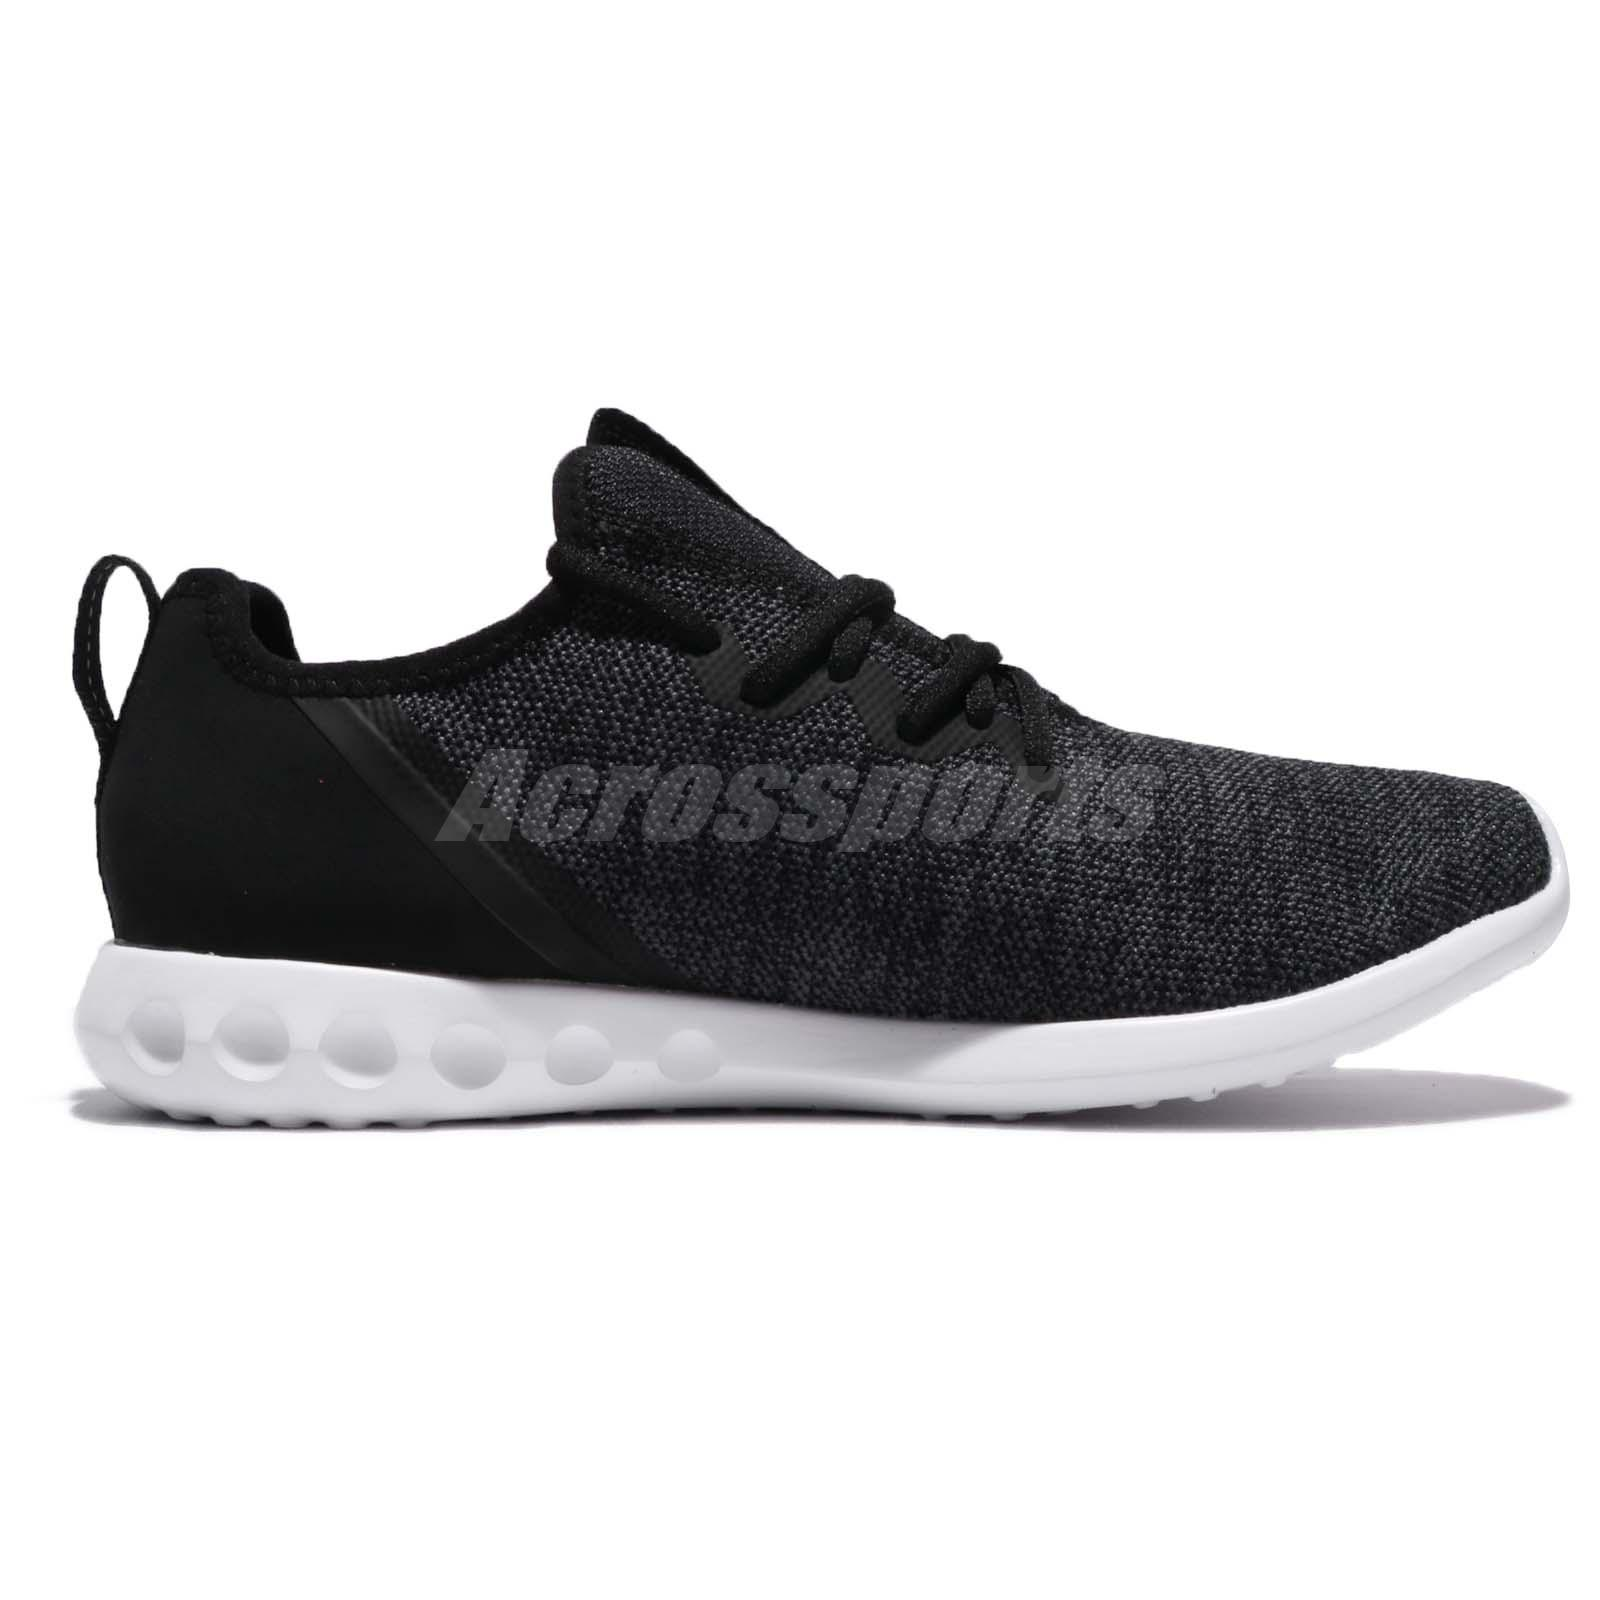 f260dbb72d32 Puma Carson 2 X Knit Black Asphalt Men Running Casual Shoes Sneakers ...